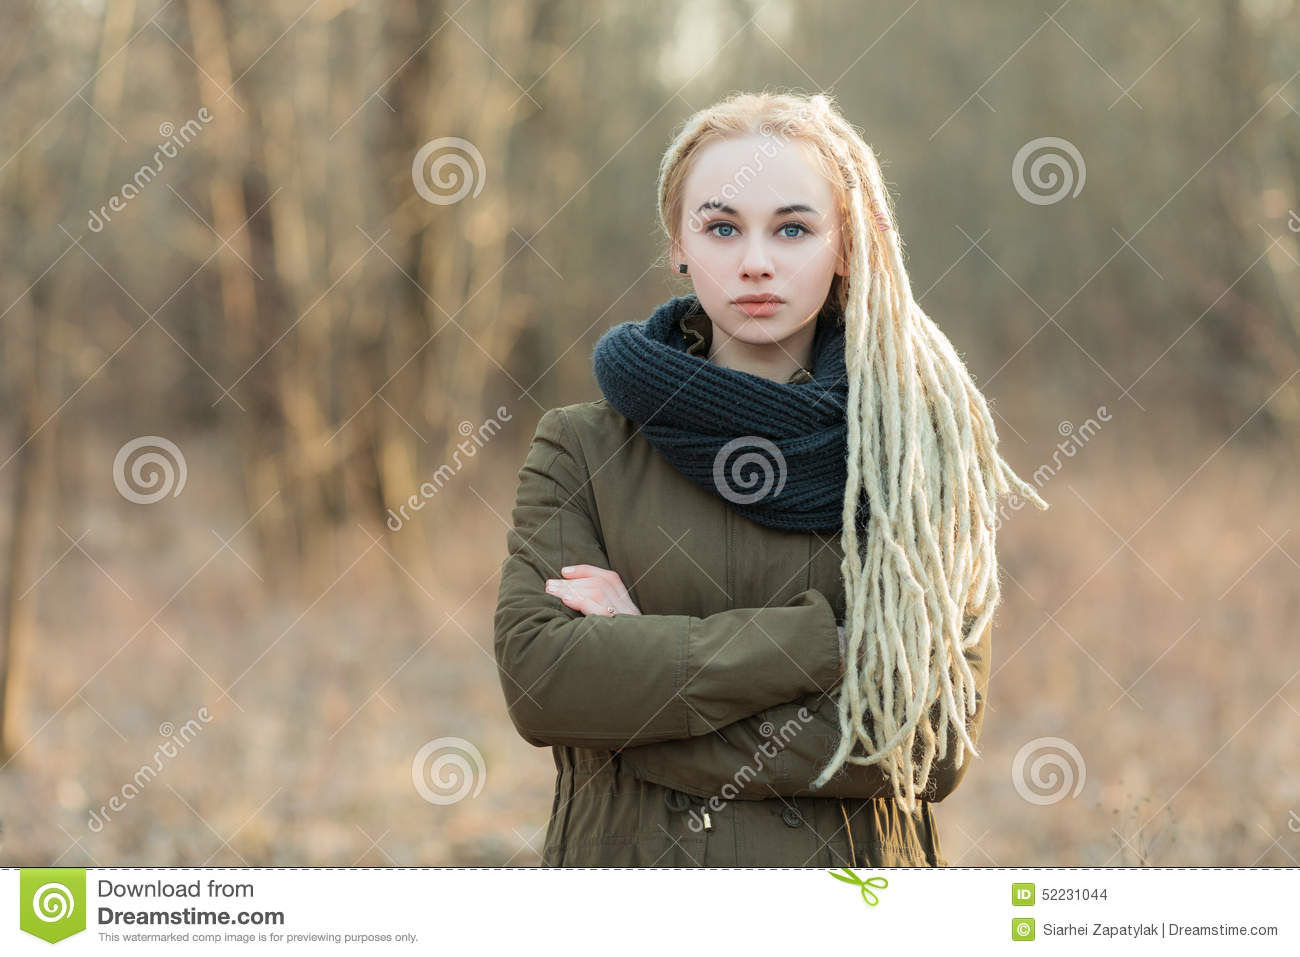 Oung Beautiful Blonde Hipster Woman In Scarf And Parka